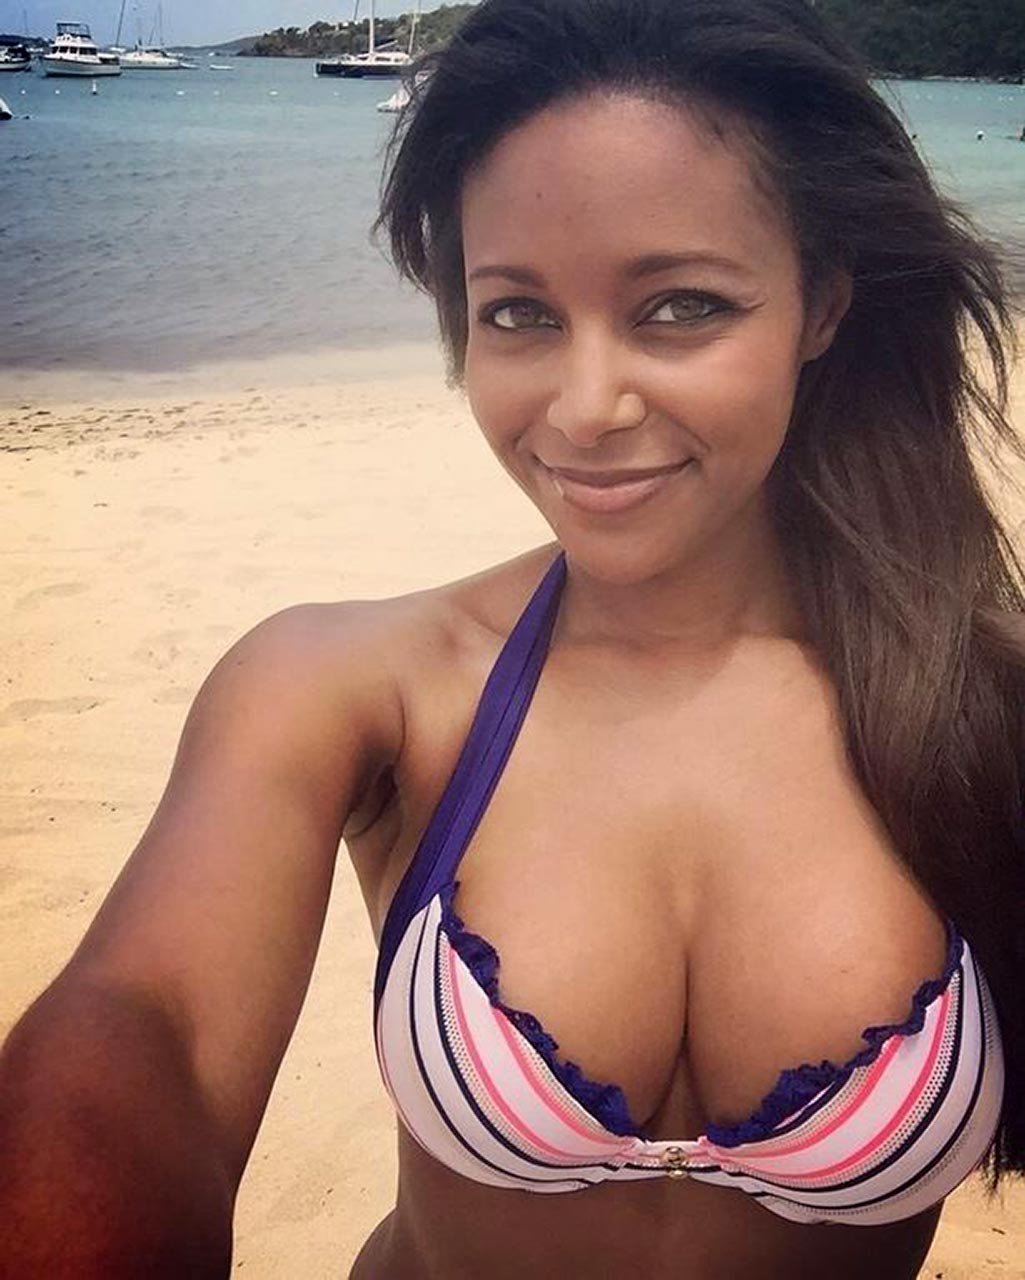 ebony wrestler brandi rhodes nude leaked private pics [new 15 pics]